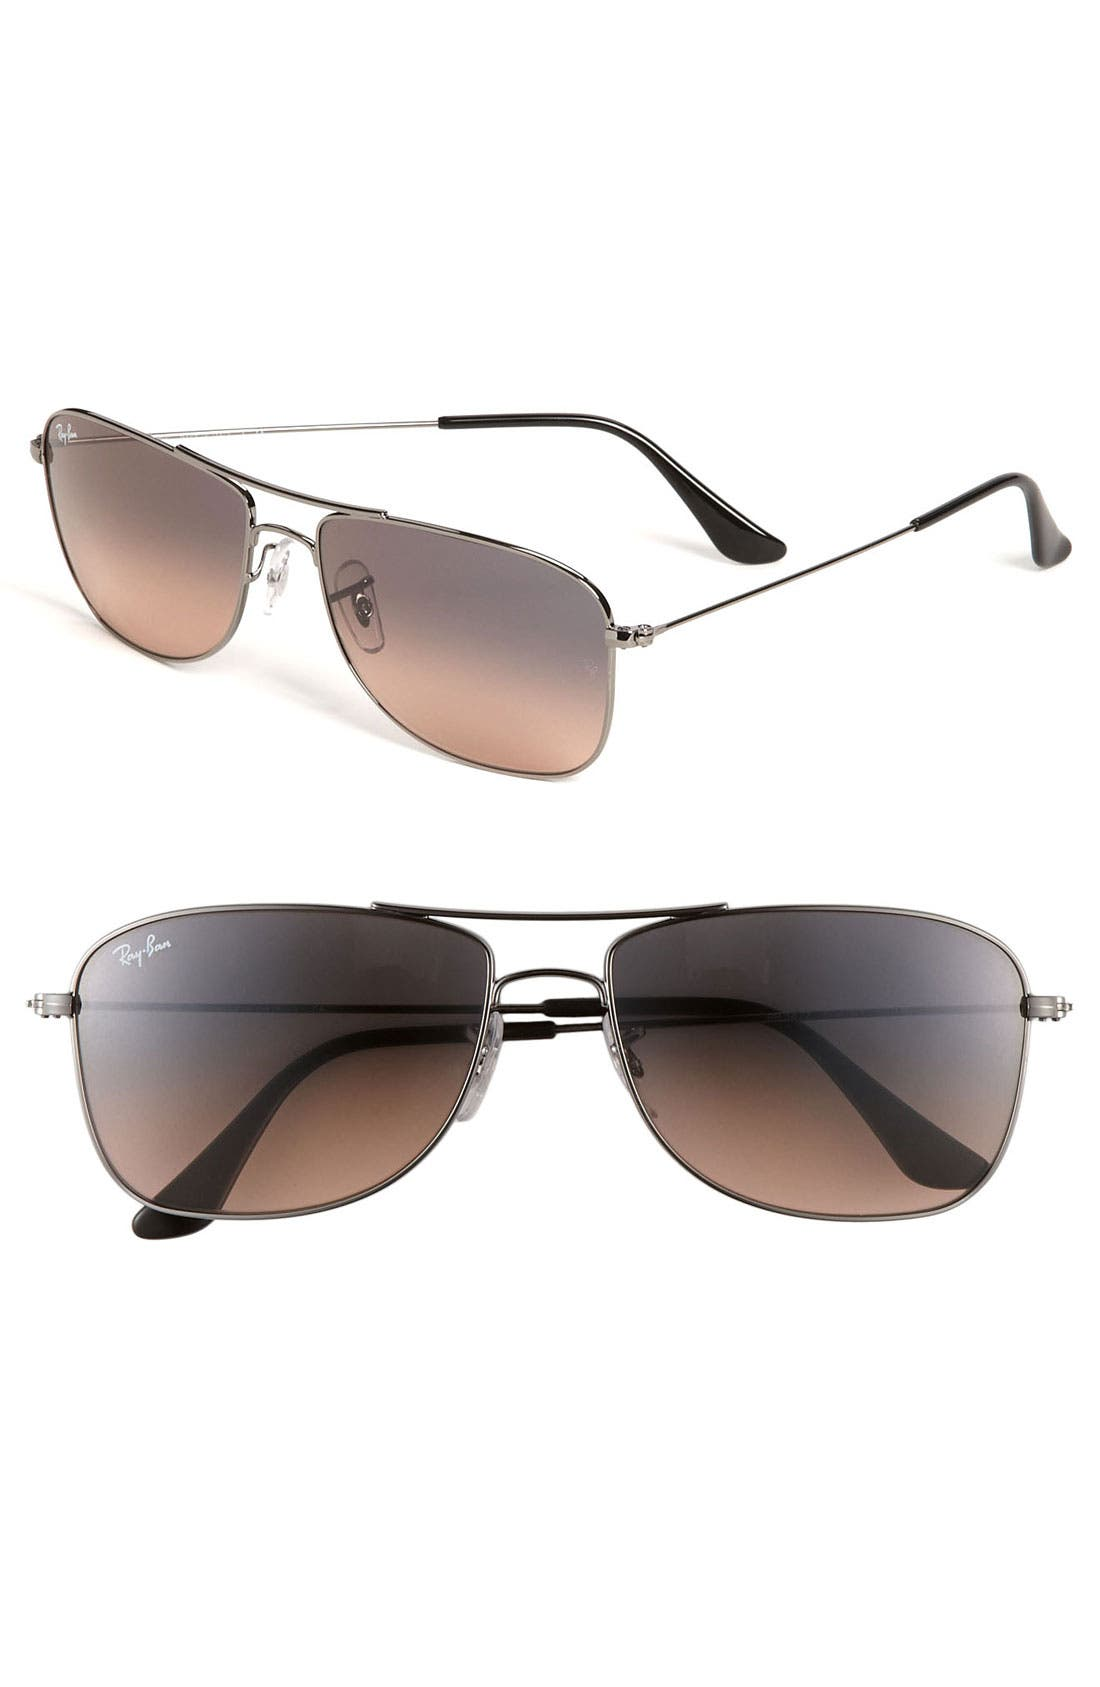 Main Image - Ray-Ban 'M Mod Caravan' 59mm Aviator Sunglasses